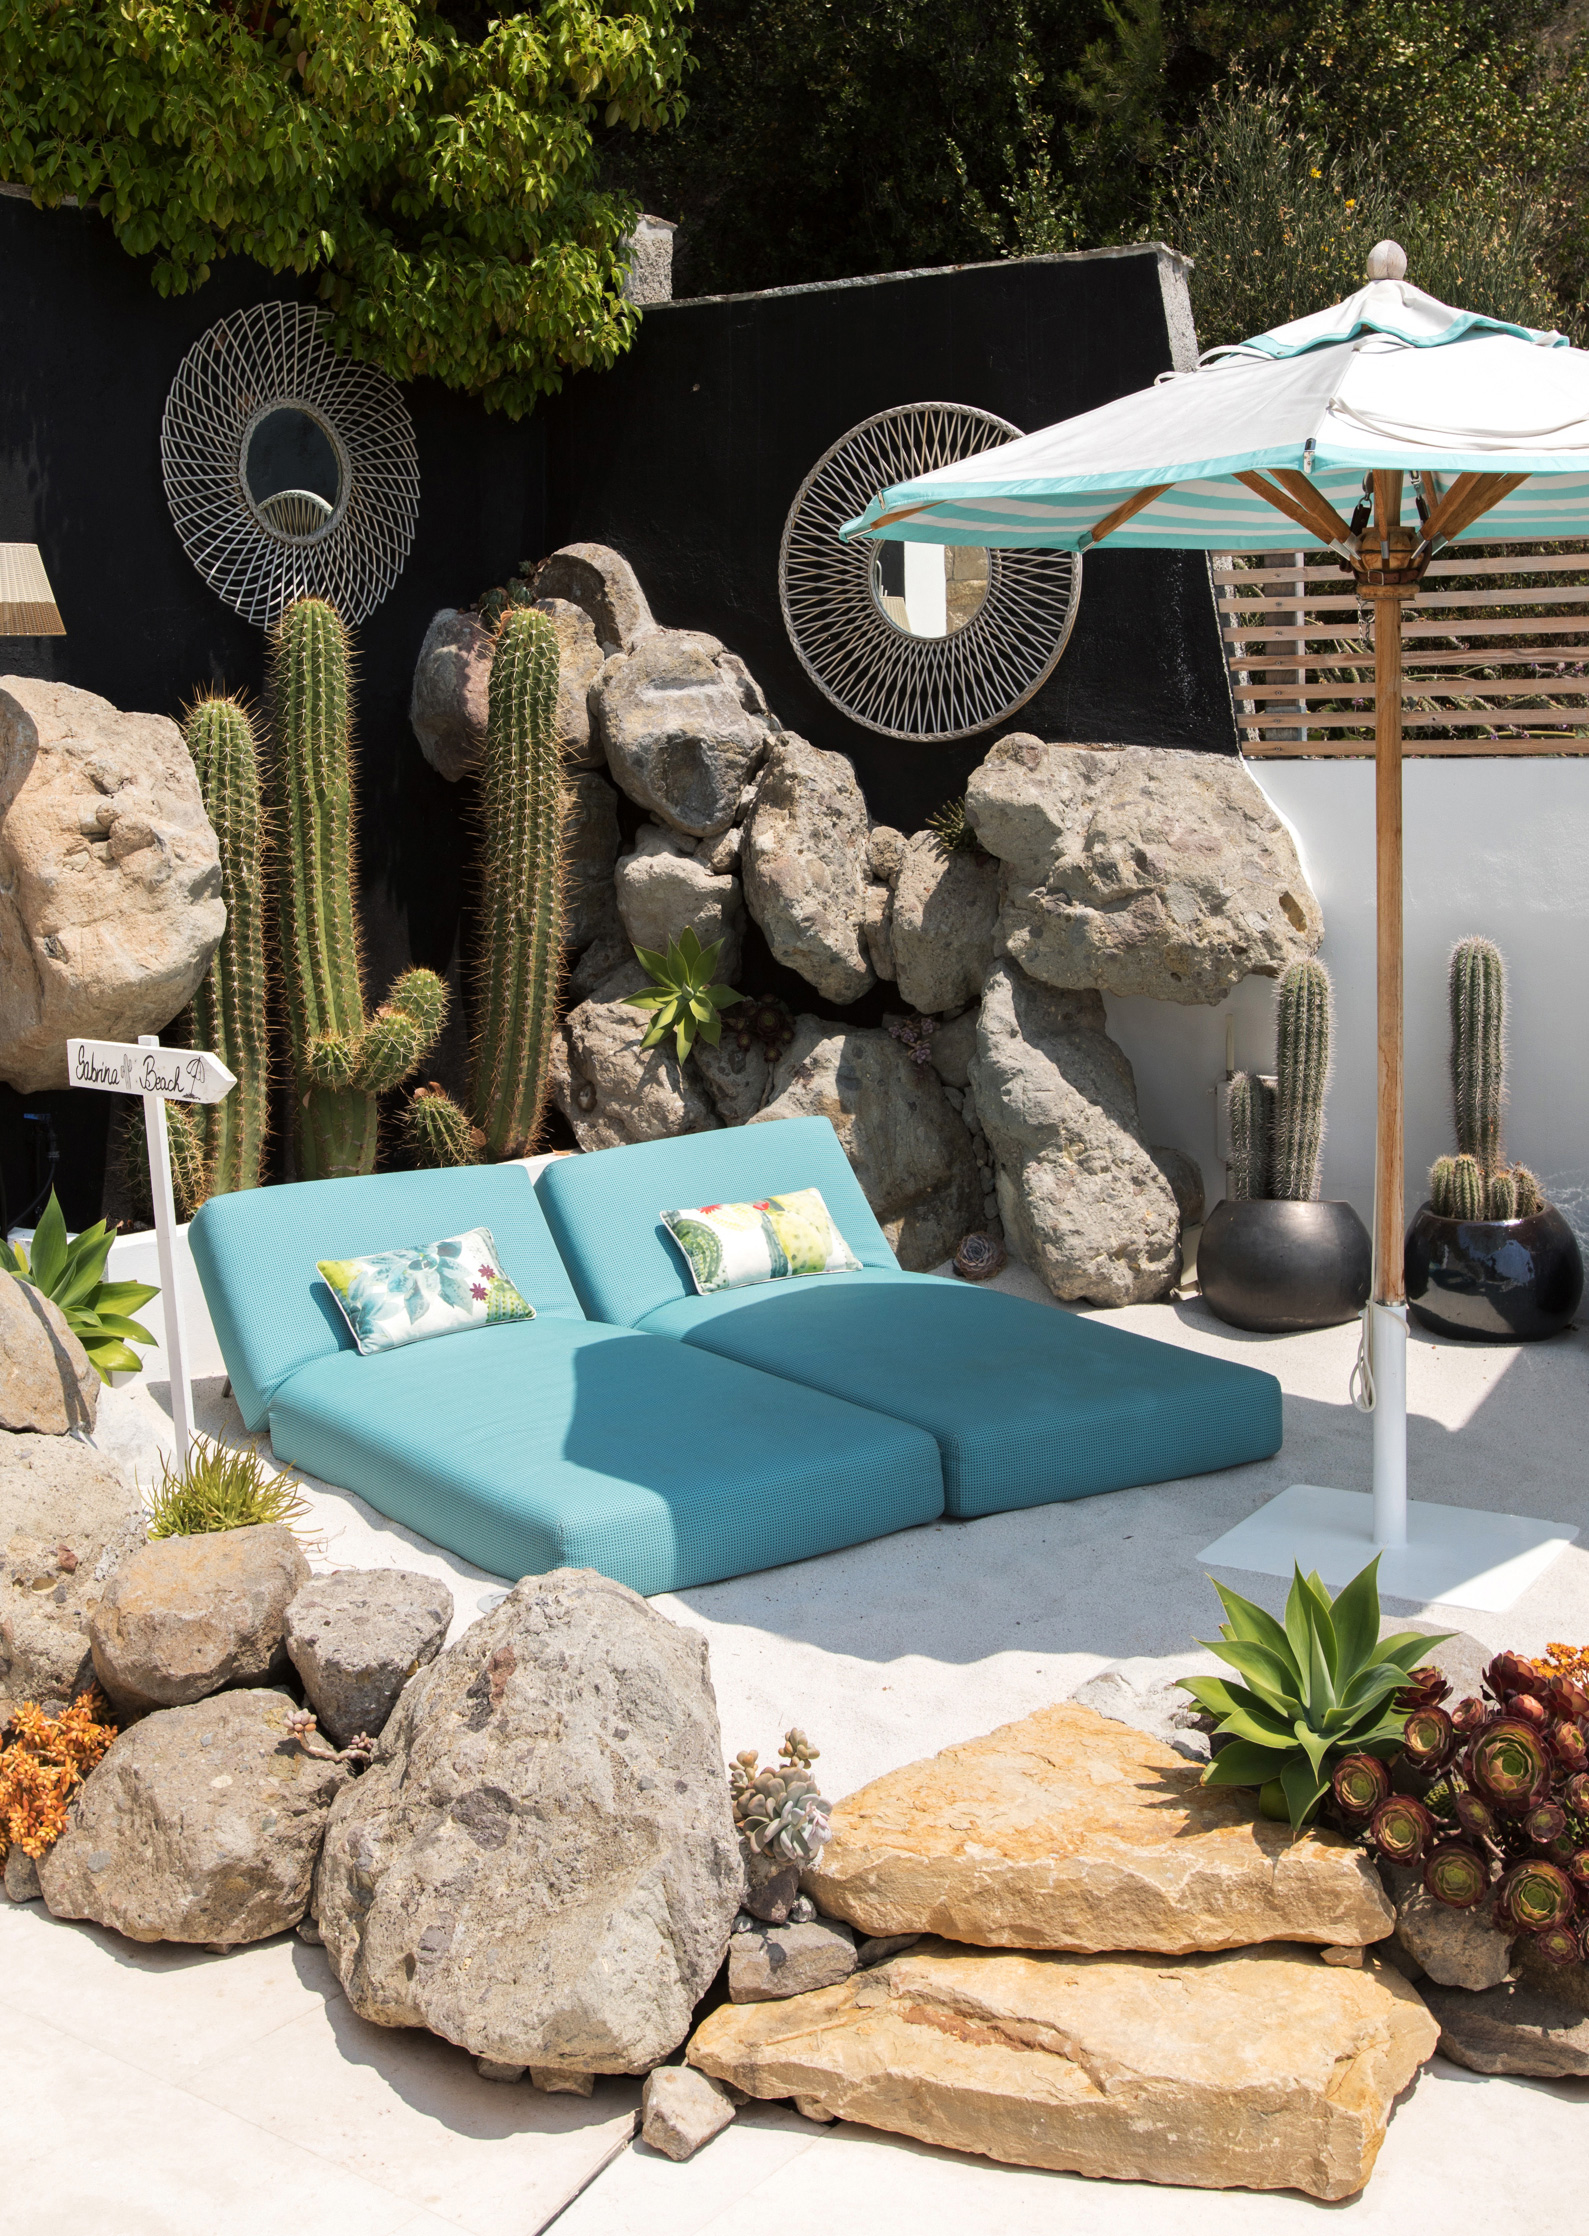 This corner with the Paola Lenti daybeds is one of Sabrina's most favourite in the whole house | Villa Riviera | Sabrina Monteleone-Oeino | STIR